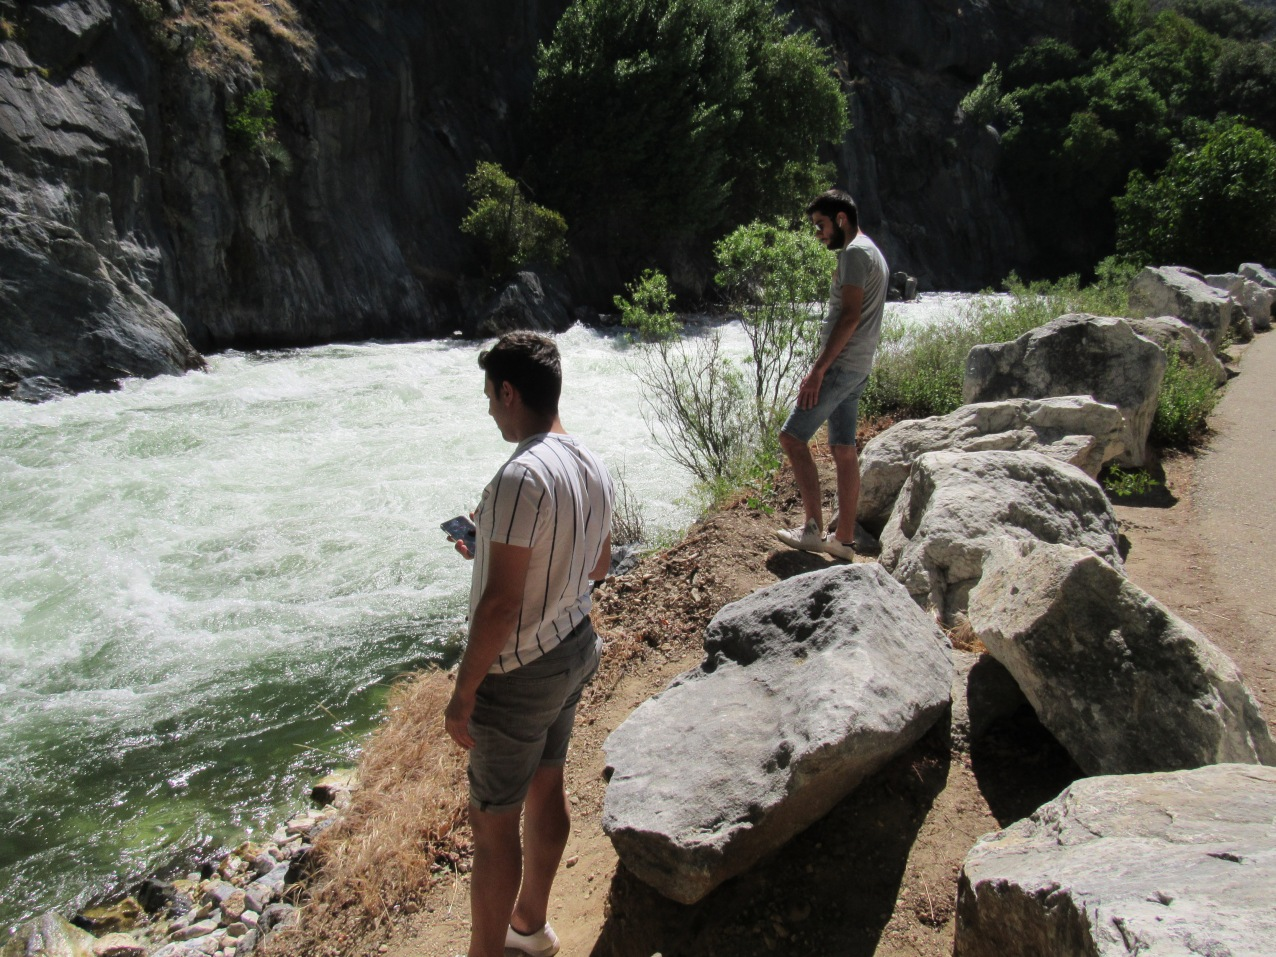 Oktay and Ahmet at the Kings River near Boyden Caves